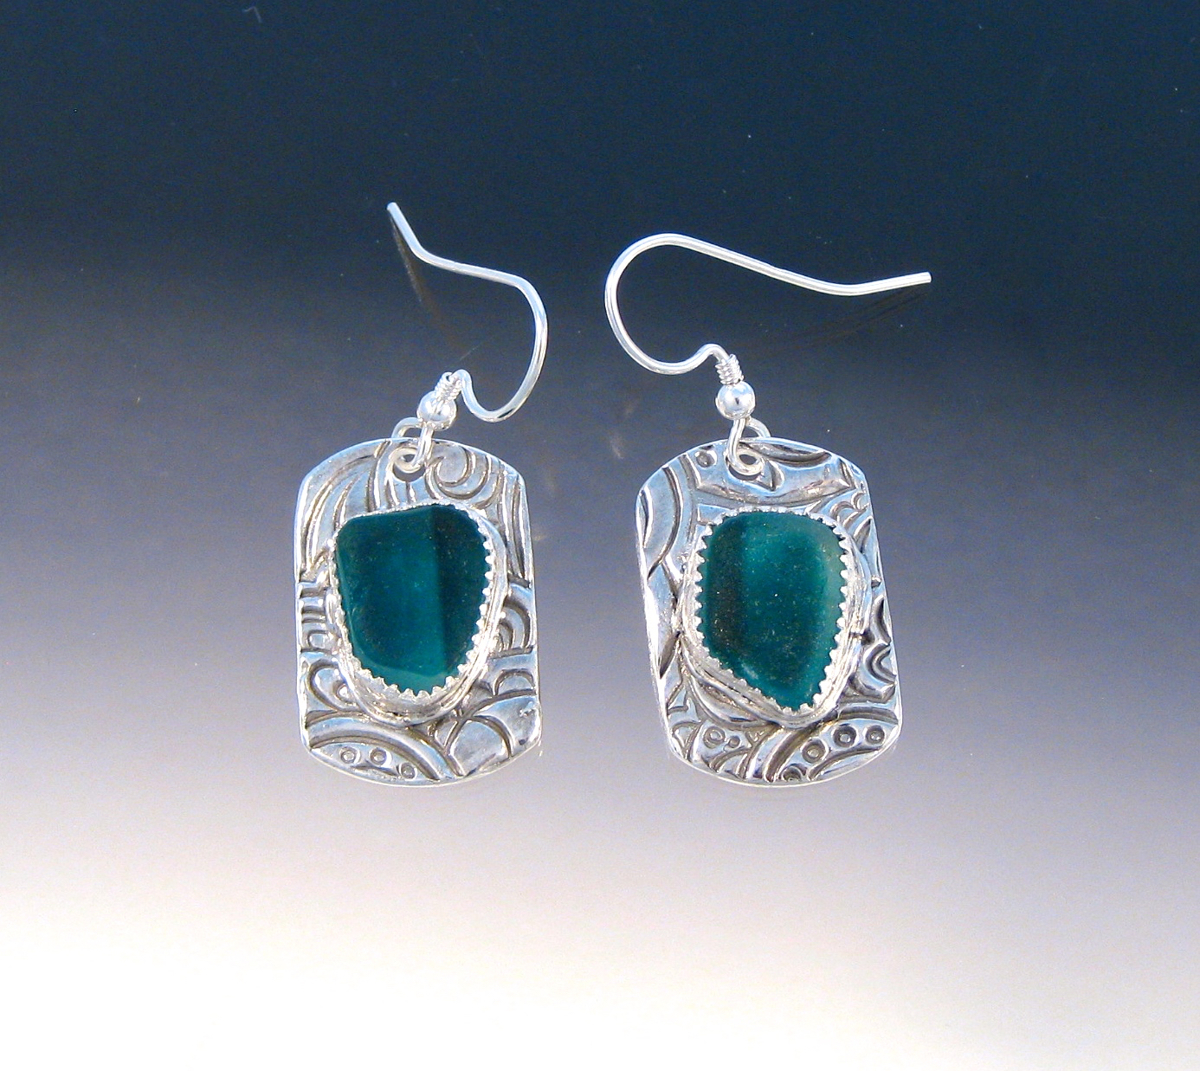 E992 - teal green flash glass in dog tag earrings (large view)